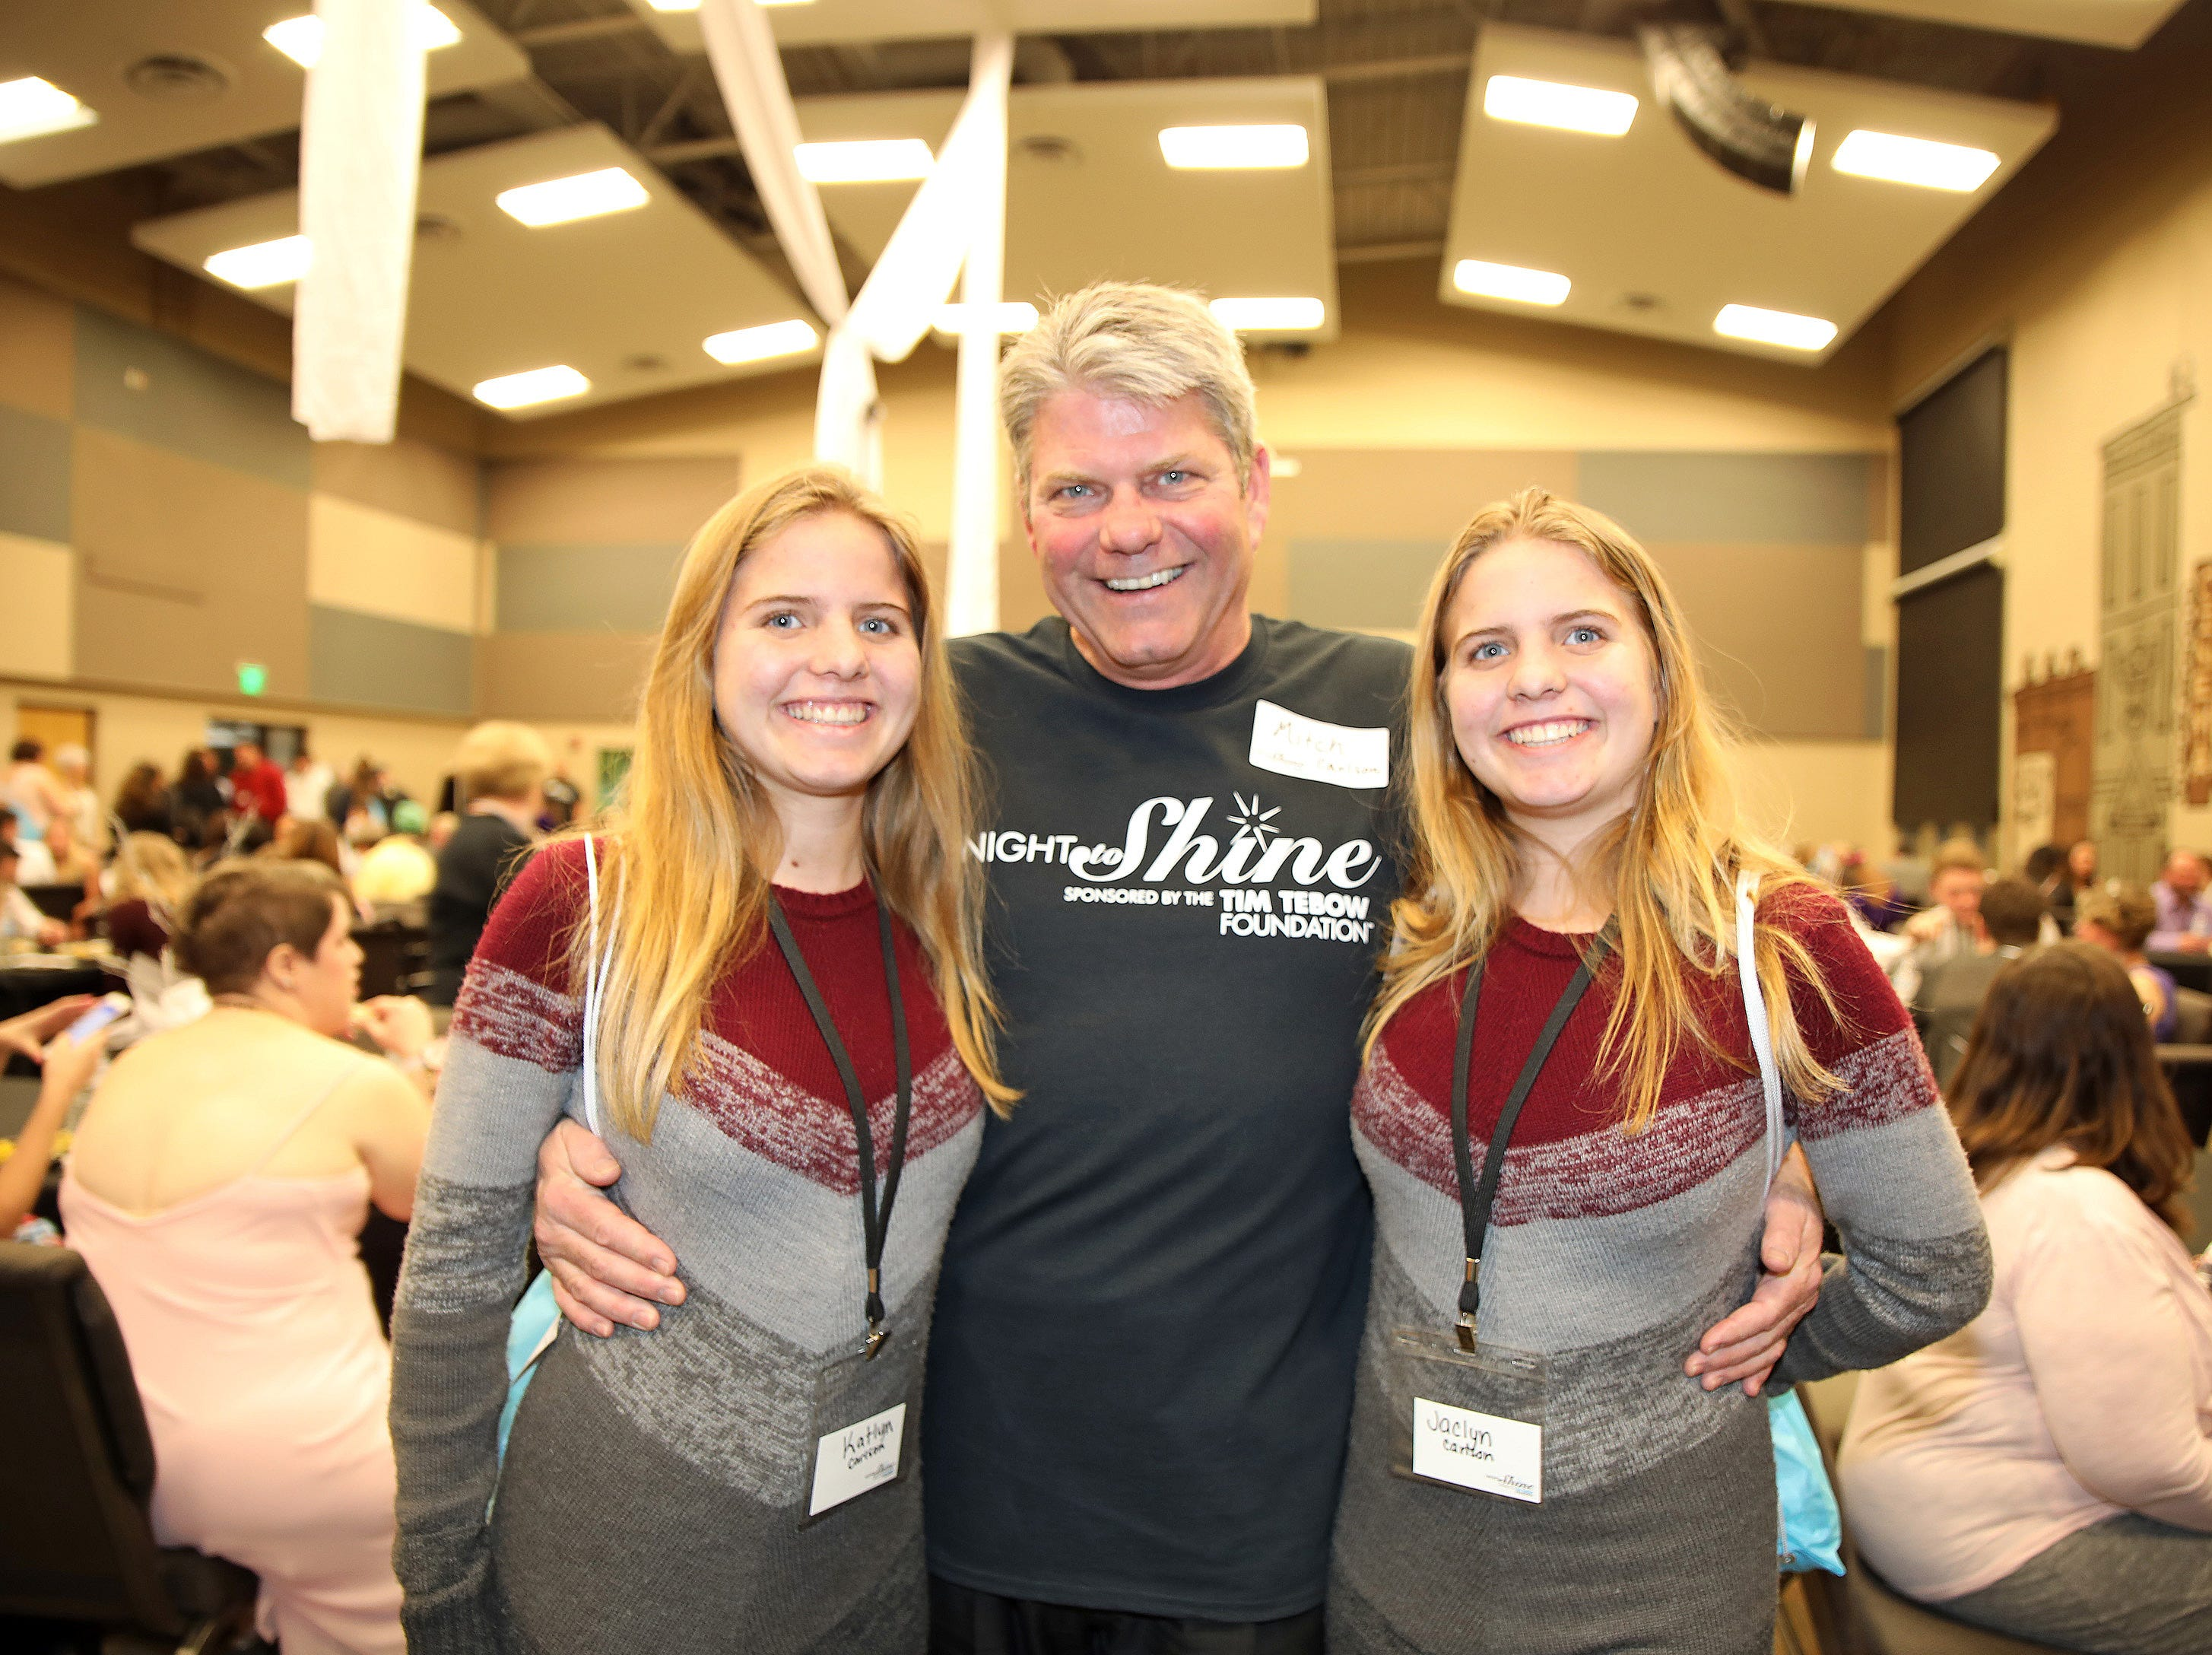 Kati, Mitch and Jaci Carlson of Ankeny volunteer during the Night to Shine event at Prairie Ridge Church in Ankeny on Friday, Feb. 8, 2019. Sponsored by the Tim Tebow Foundation, the event for adults with special needs features a prom-like atmosphere with dancing, limo rides, food and more.